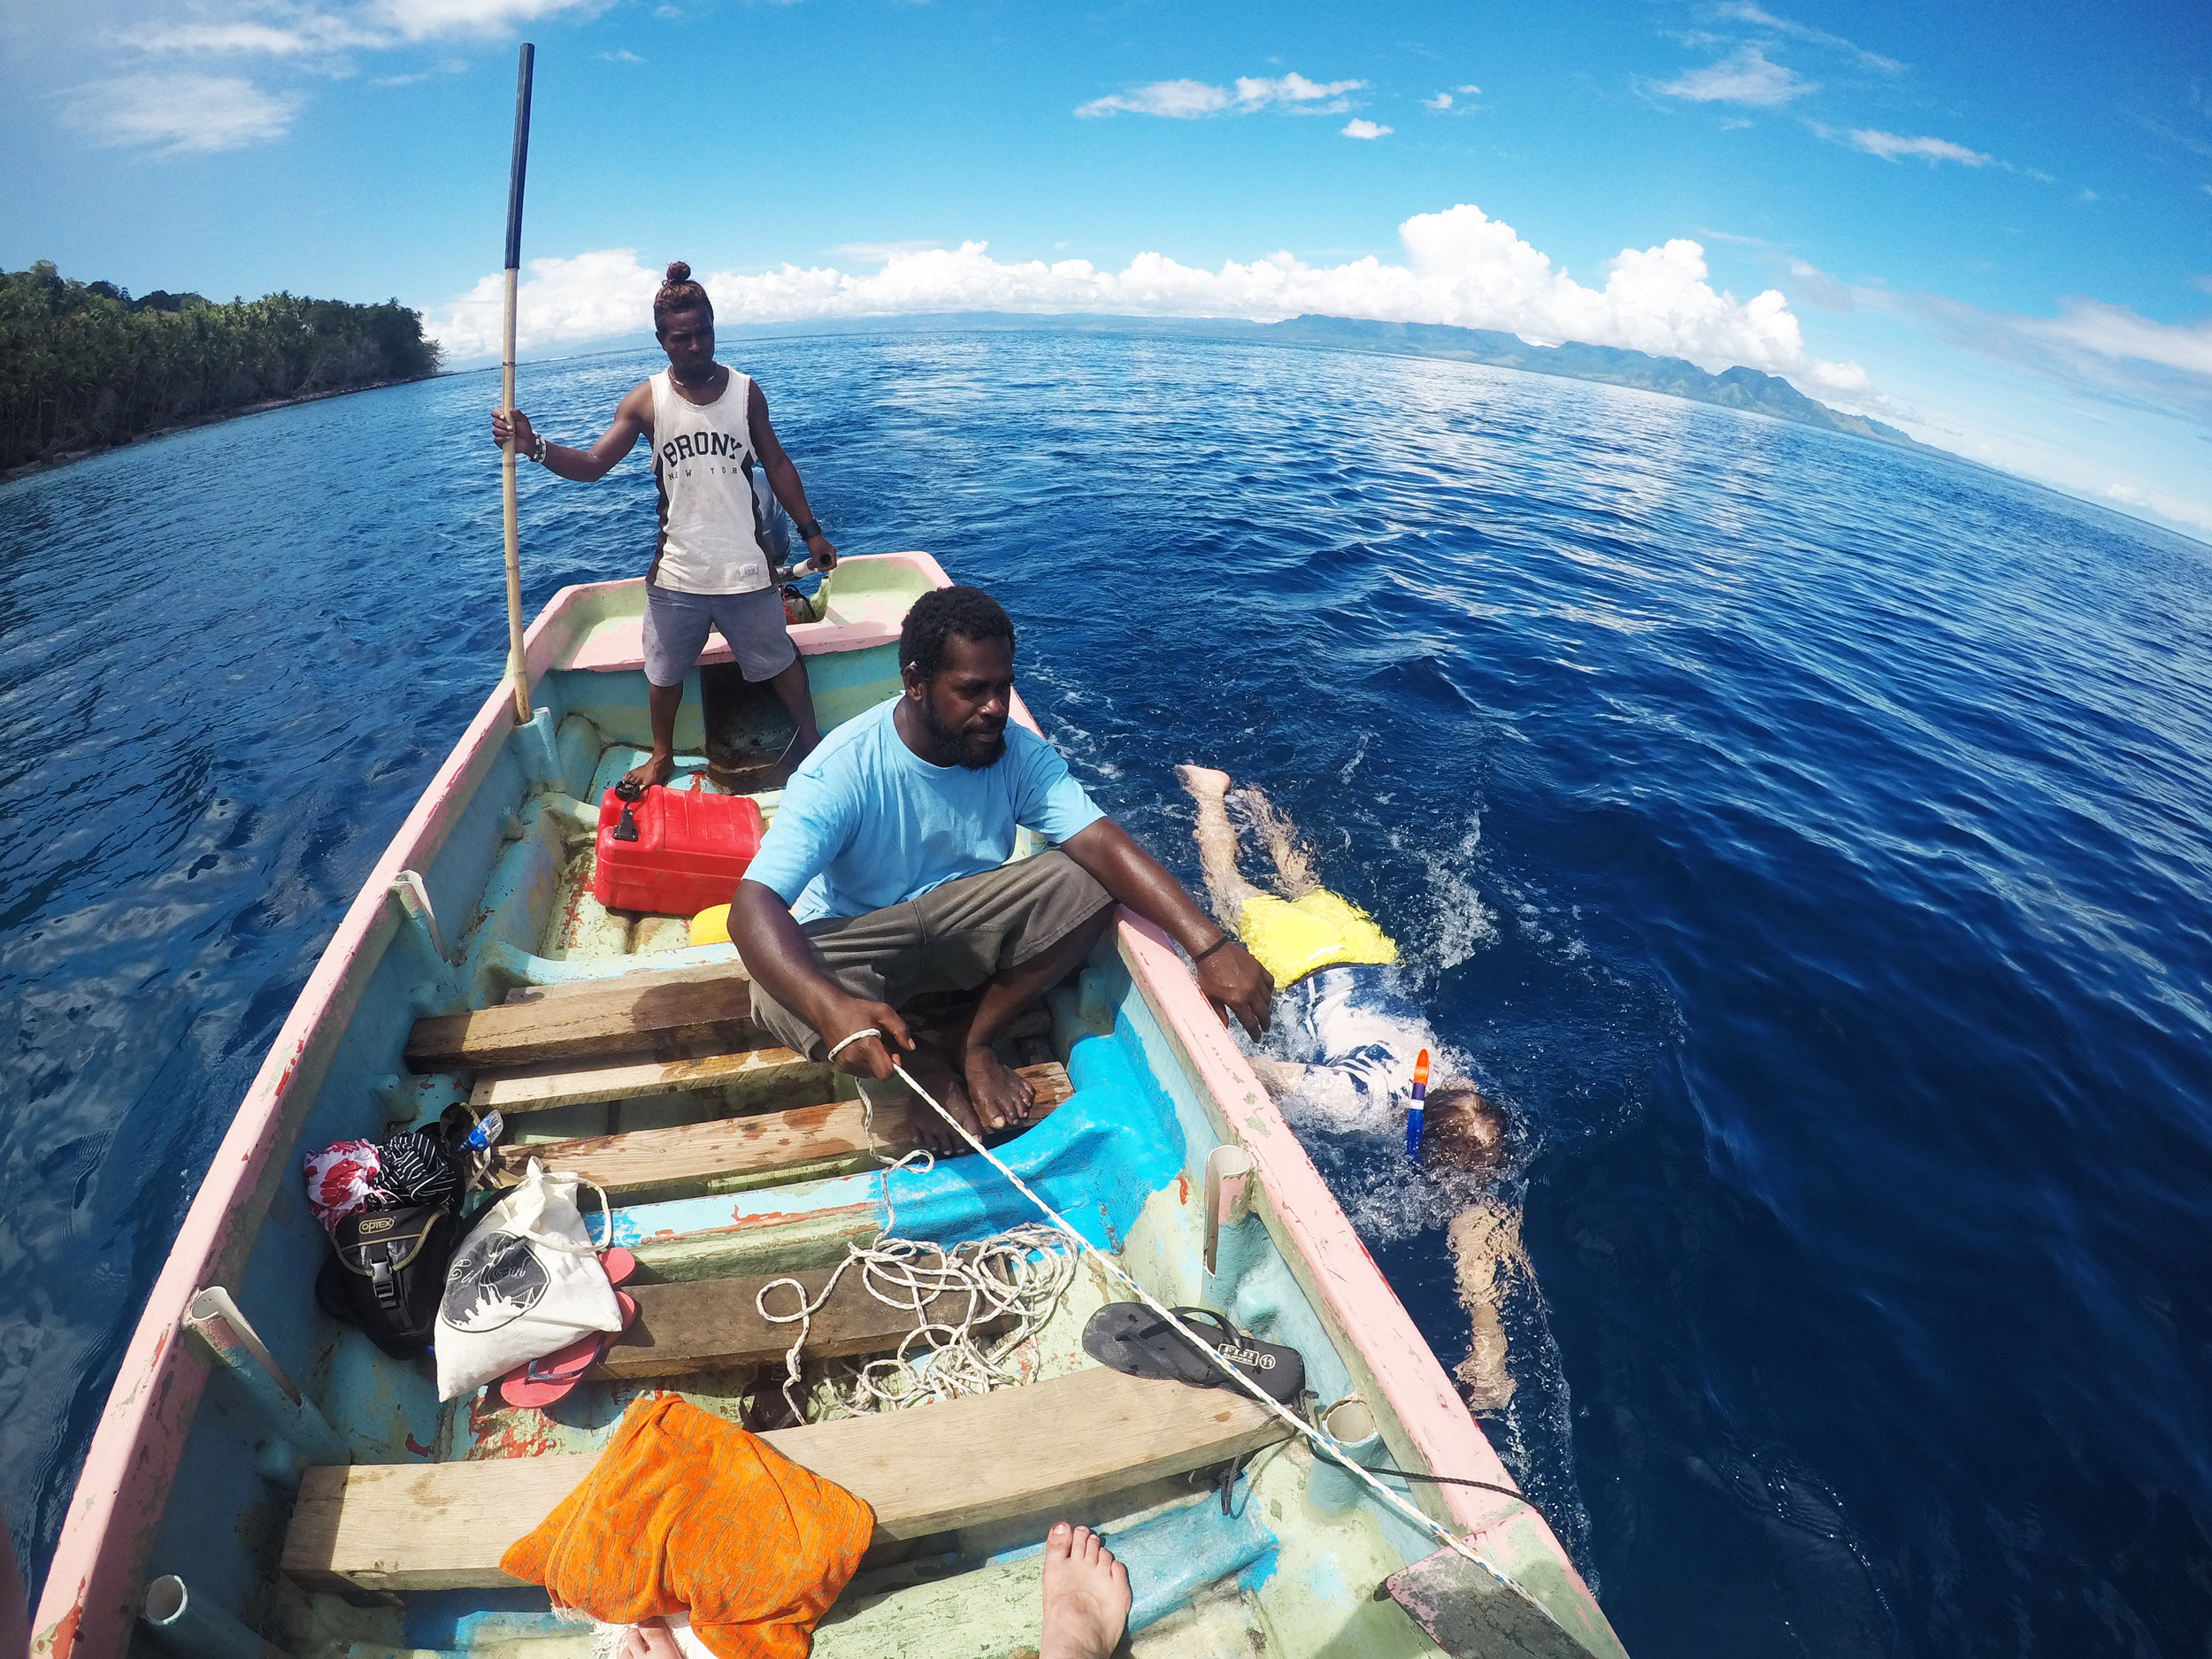 Gordon under tow:  My ship-mate getting dragged along side the banana boat under the watchful-eye of our guides.